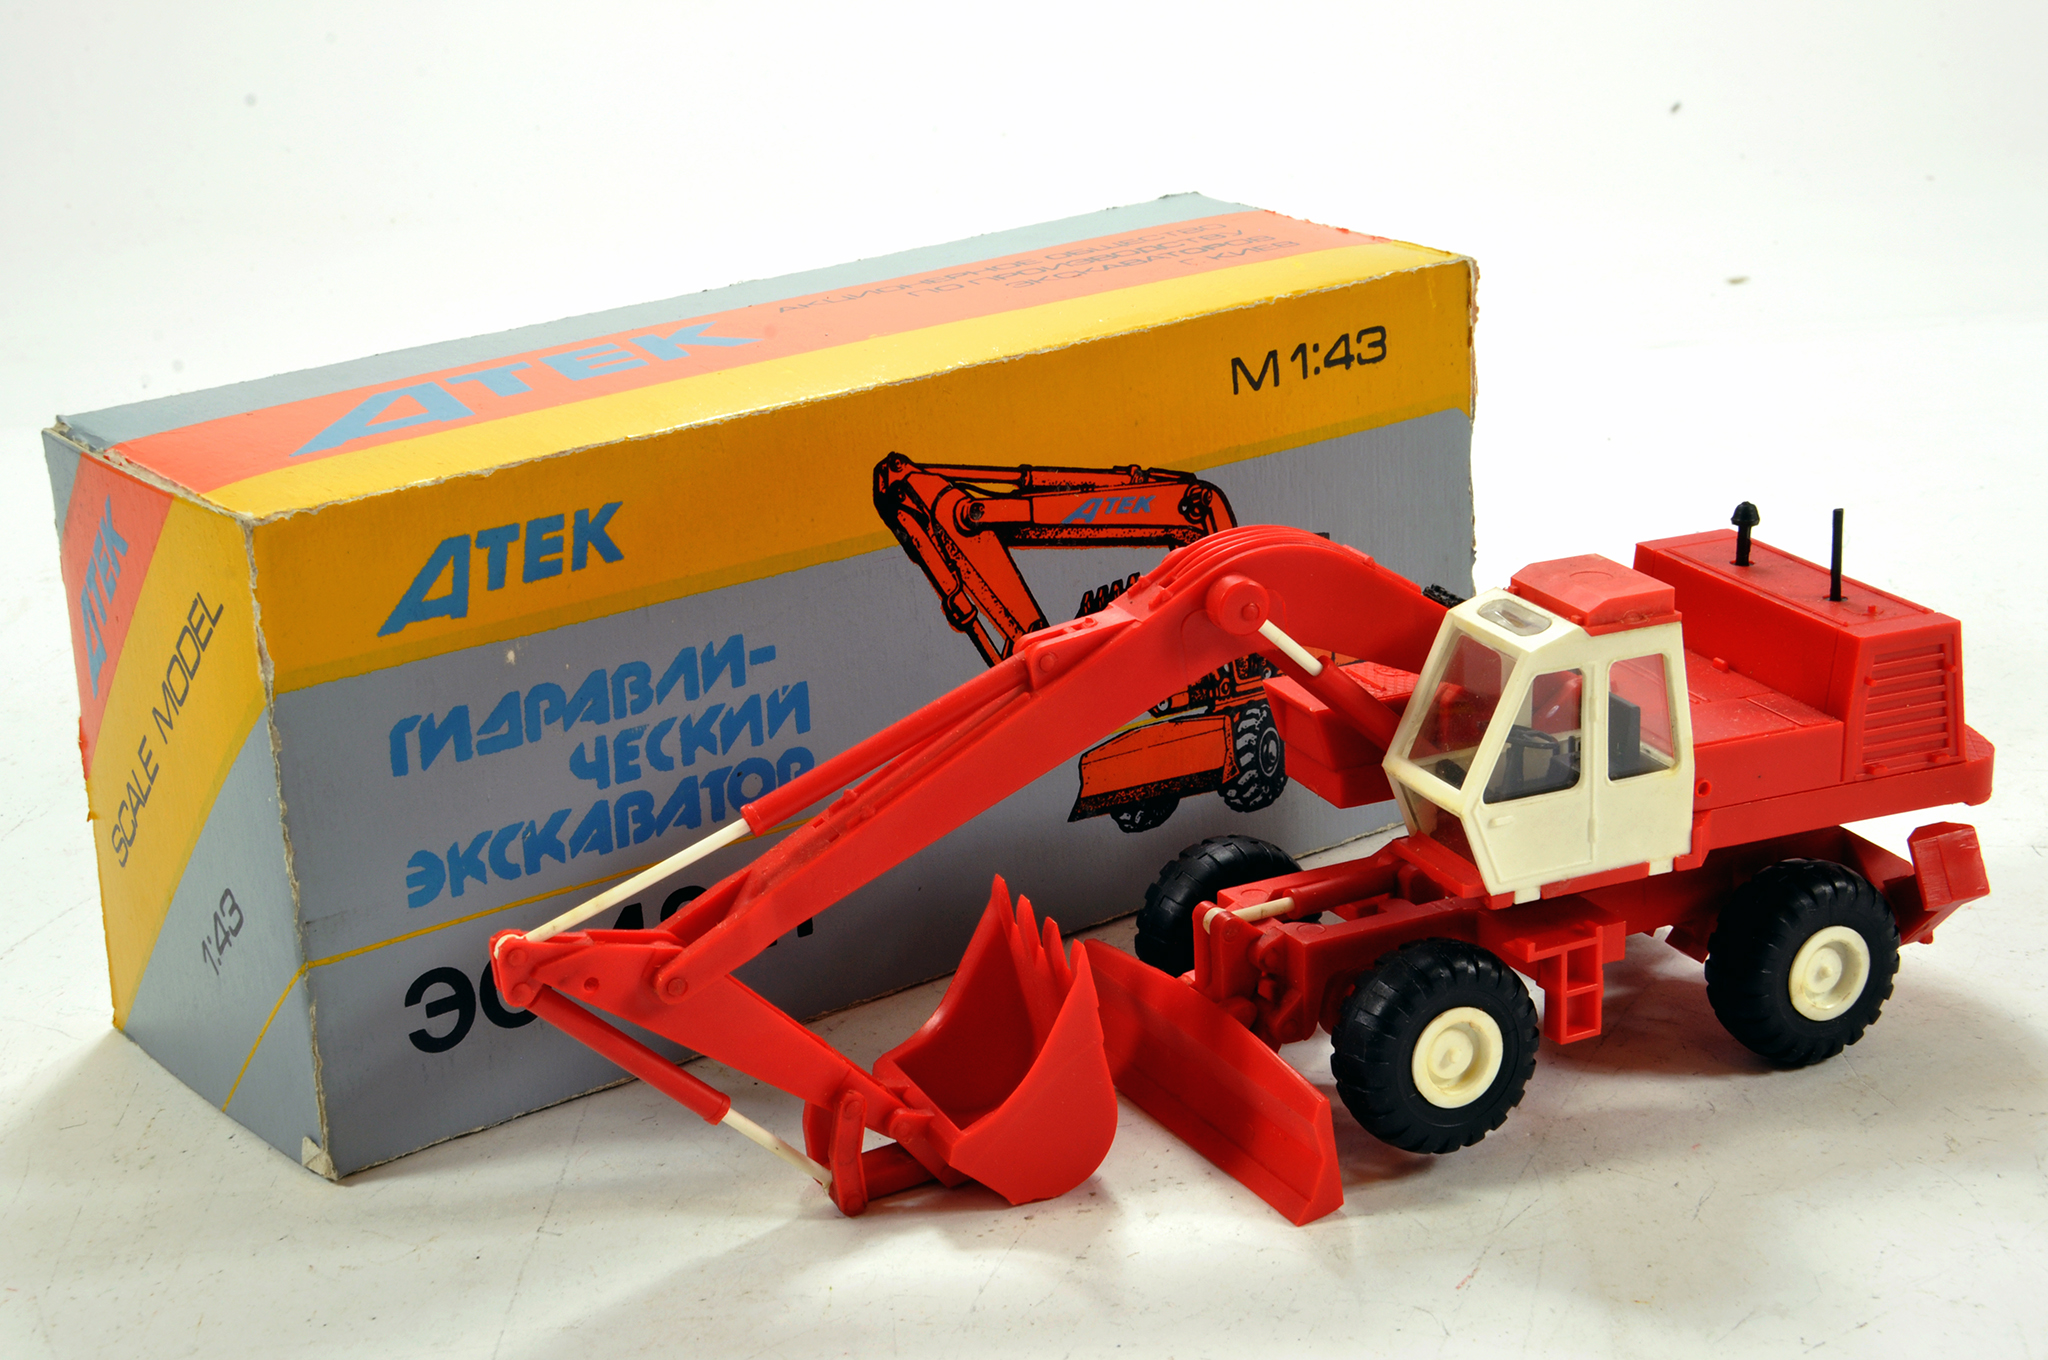 Lot 674 - Scarce ATEK (Russia) 1/43 plastic made Wheeled Excavator in livery of O&K. E to NM in Box.